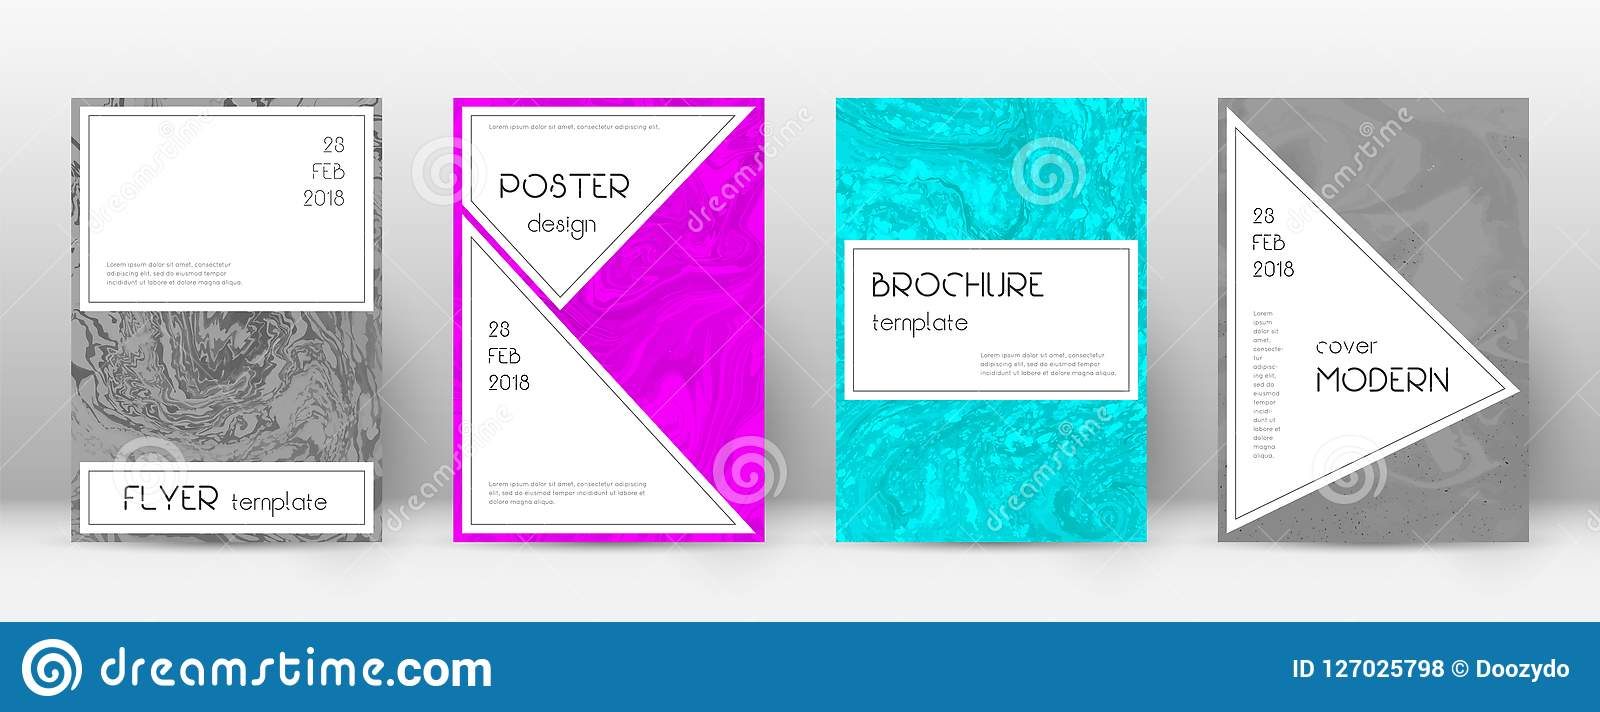 Trendy Poster Designs: Abstract Cover. Bewitching Design Template. Suminagashi